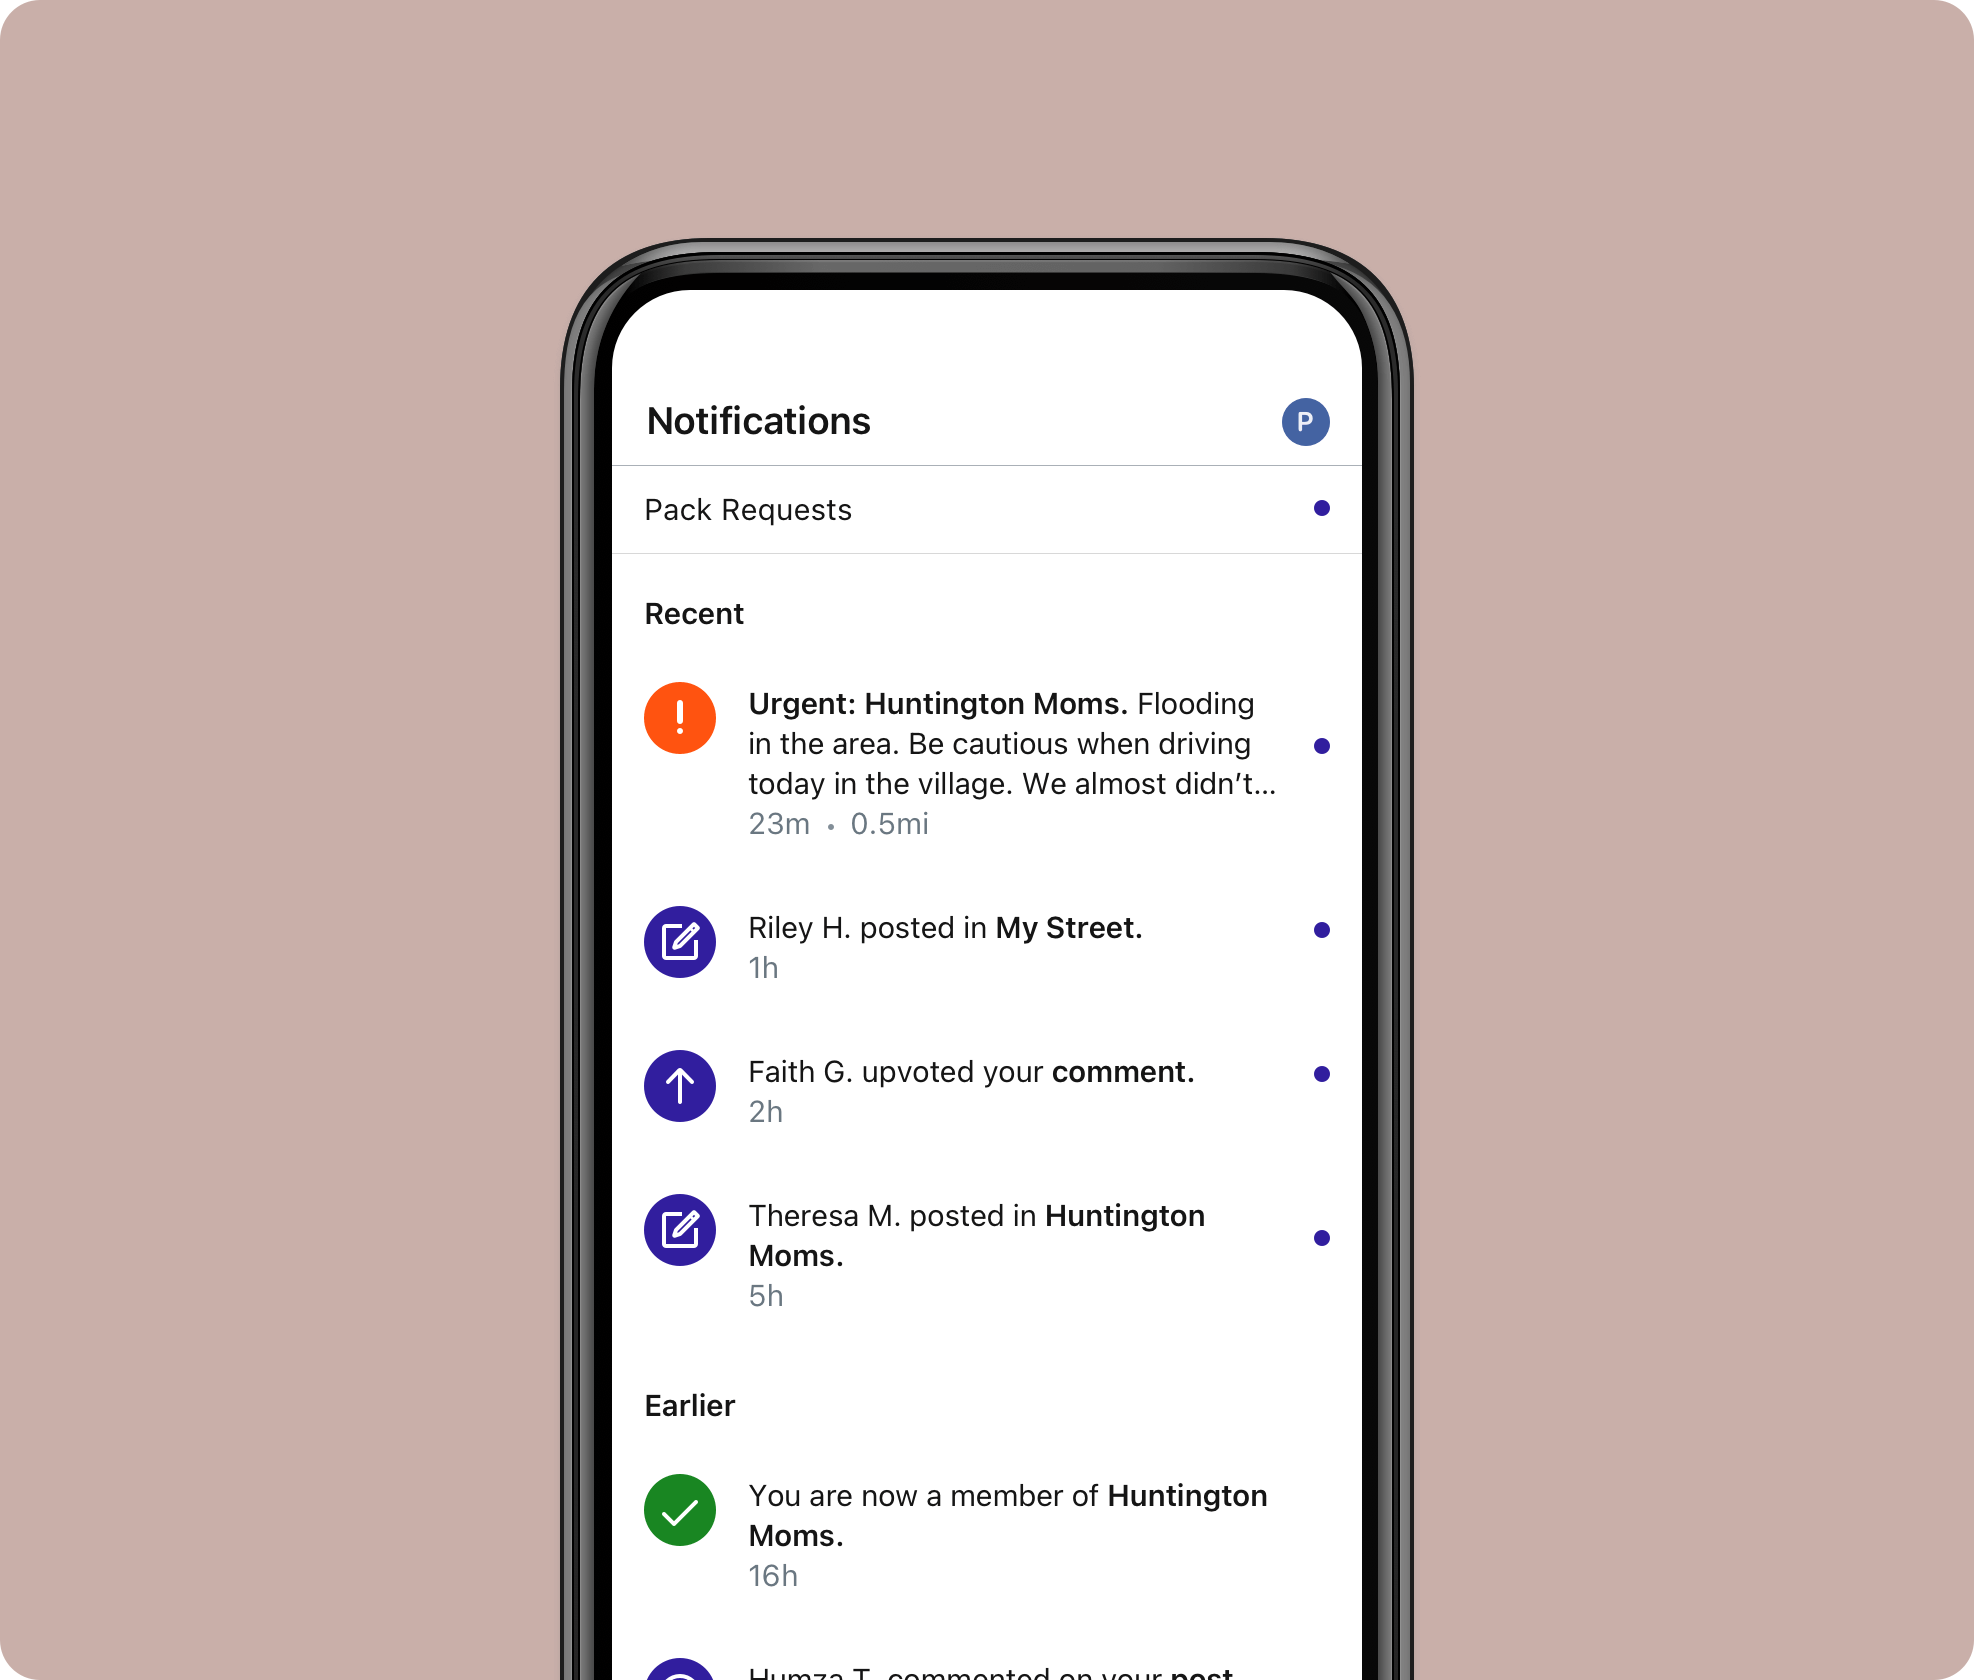 A screen mockup depicting the notifications screen in the Howl app.